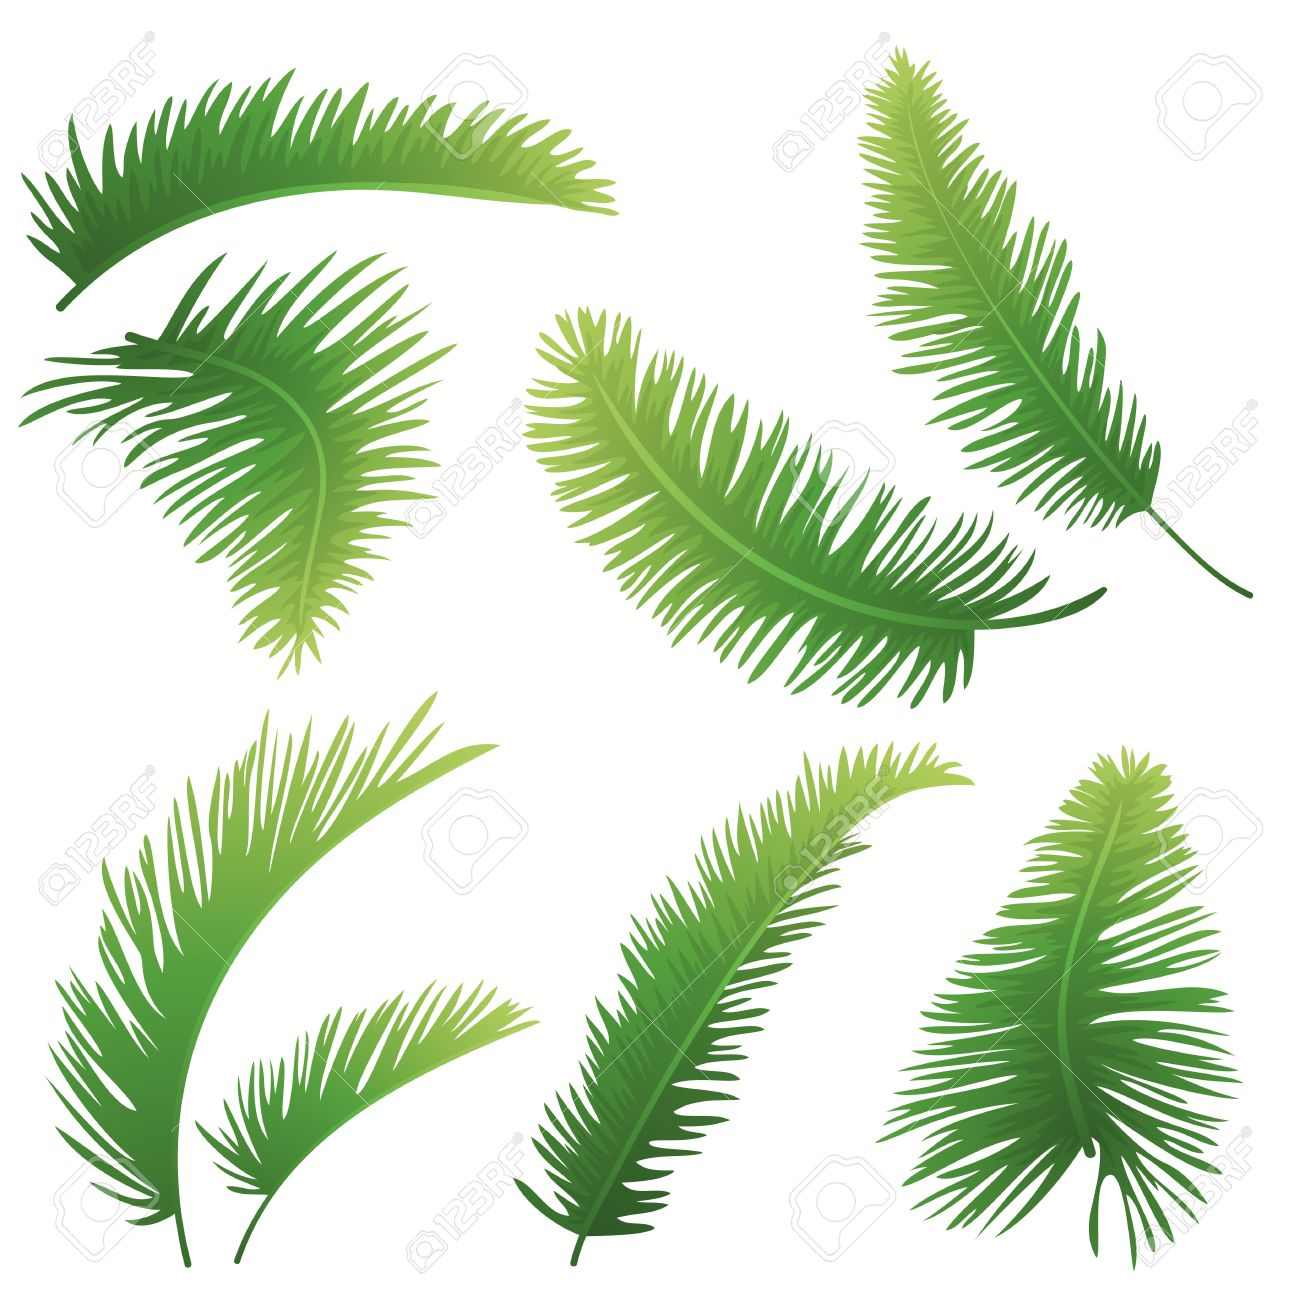 Set green branches with leaves of palm trees on a white background Drawn from life - 17962544